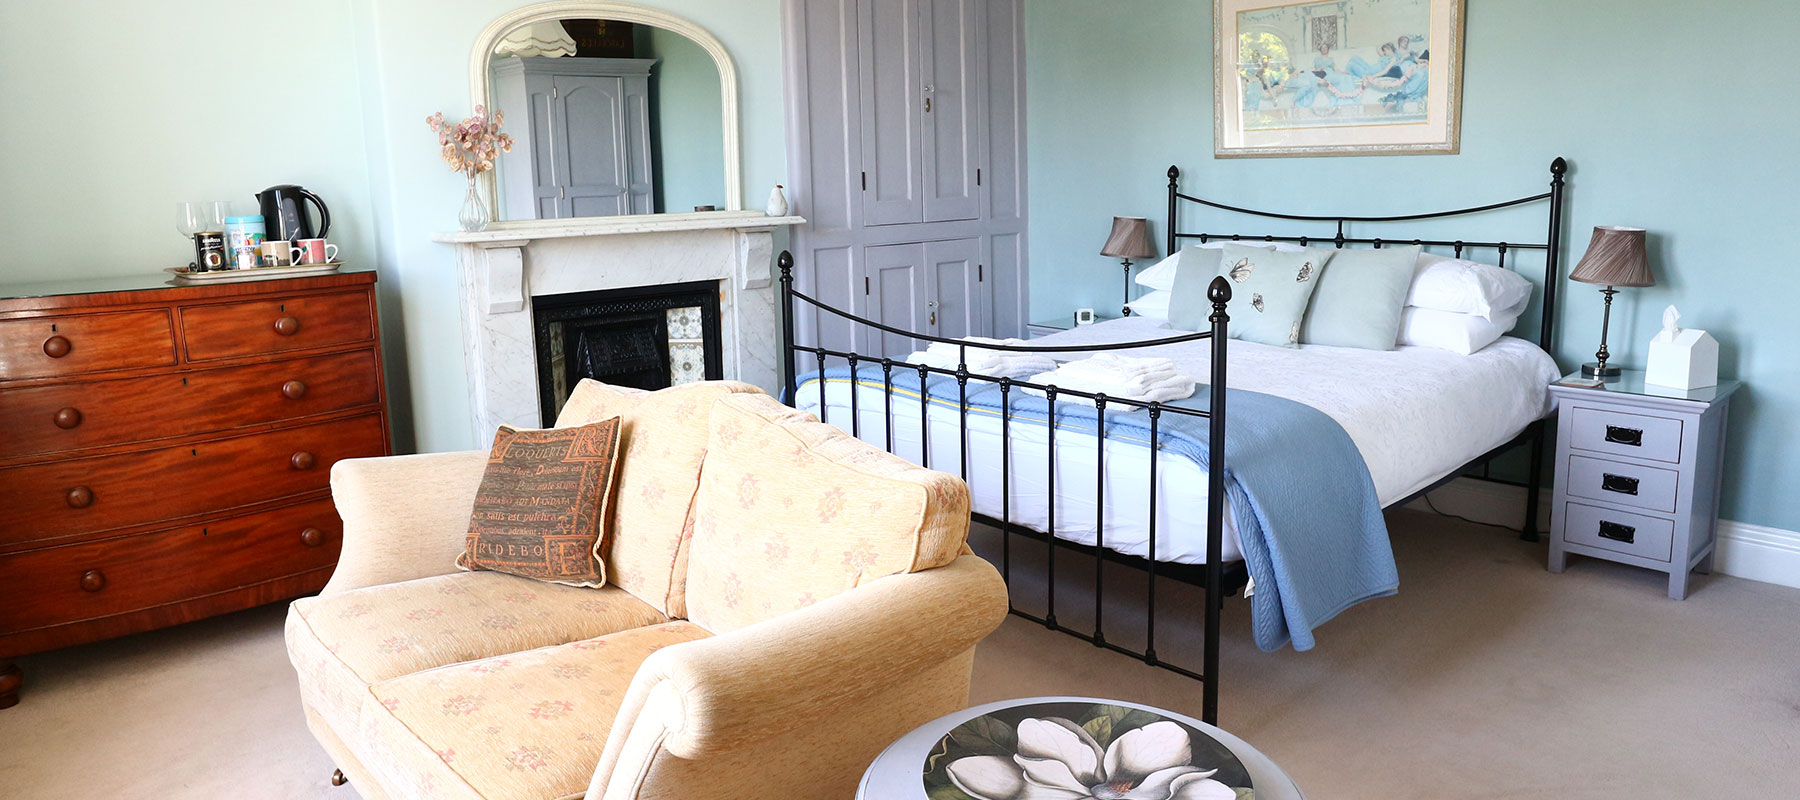 Saxon Villa Bed and Breakfast – Luxury King Room